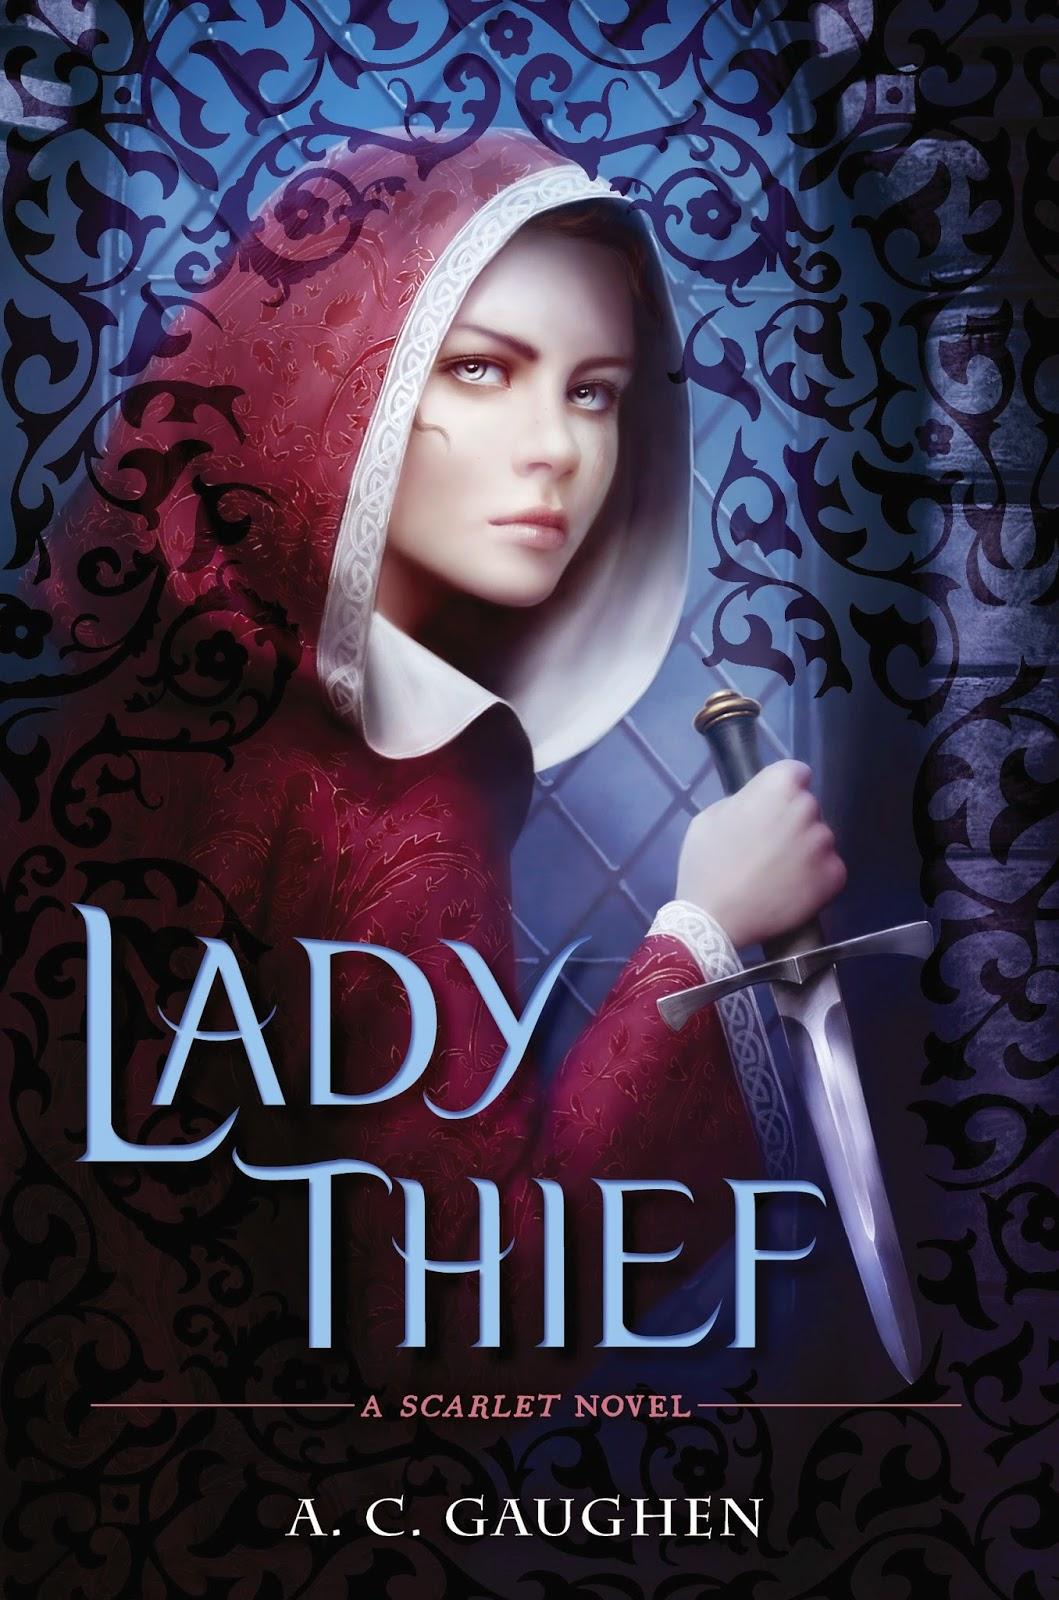 http://www.bloomsbury.com/us/lady-thief-9780802737885/